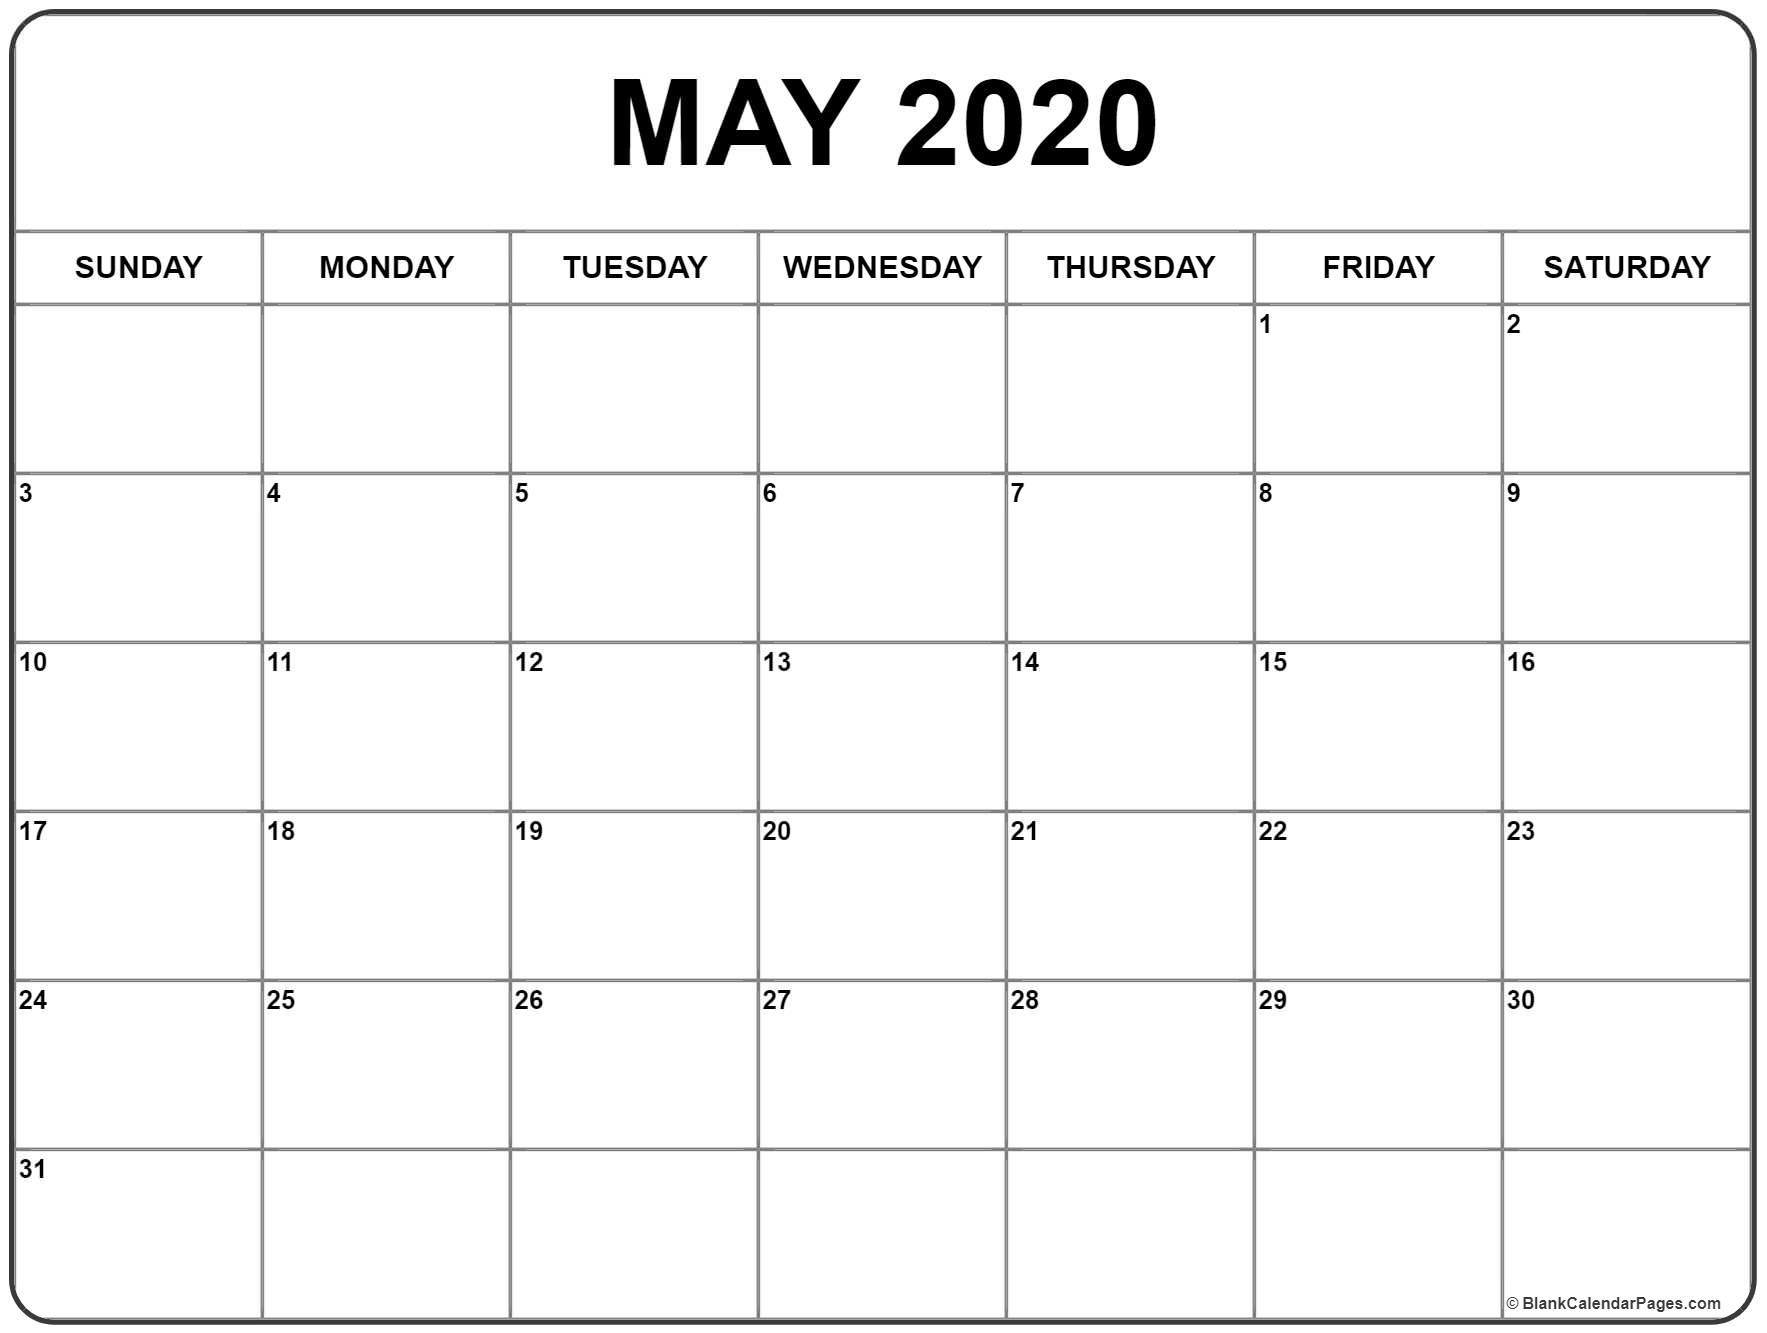 May 2020 Calendar | Free Printable Monthly Calendars throughout Calendar 2020 Printable Calendar Starting With Monday